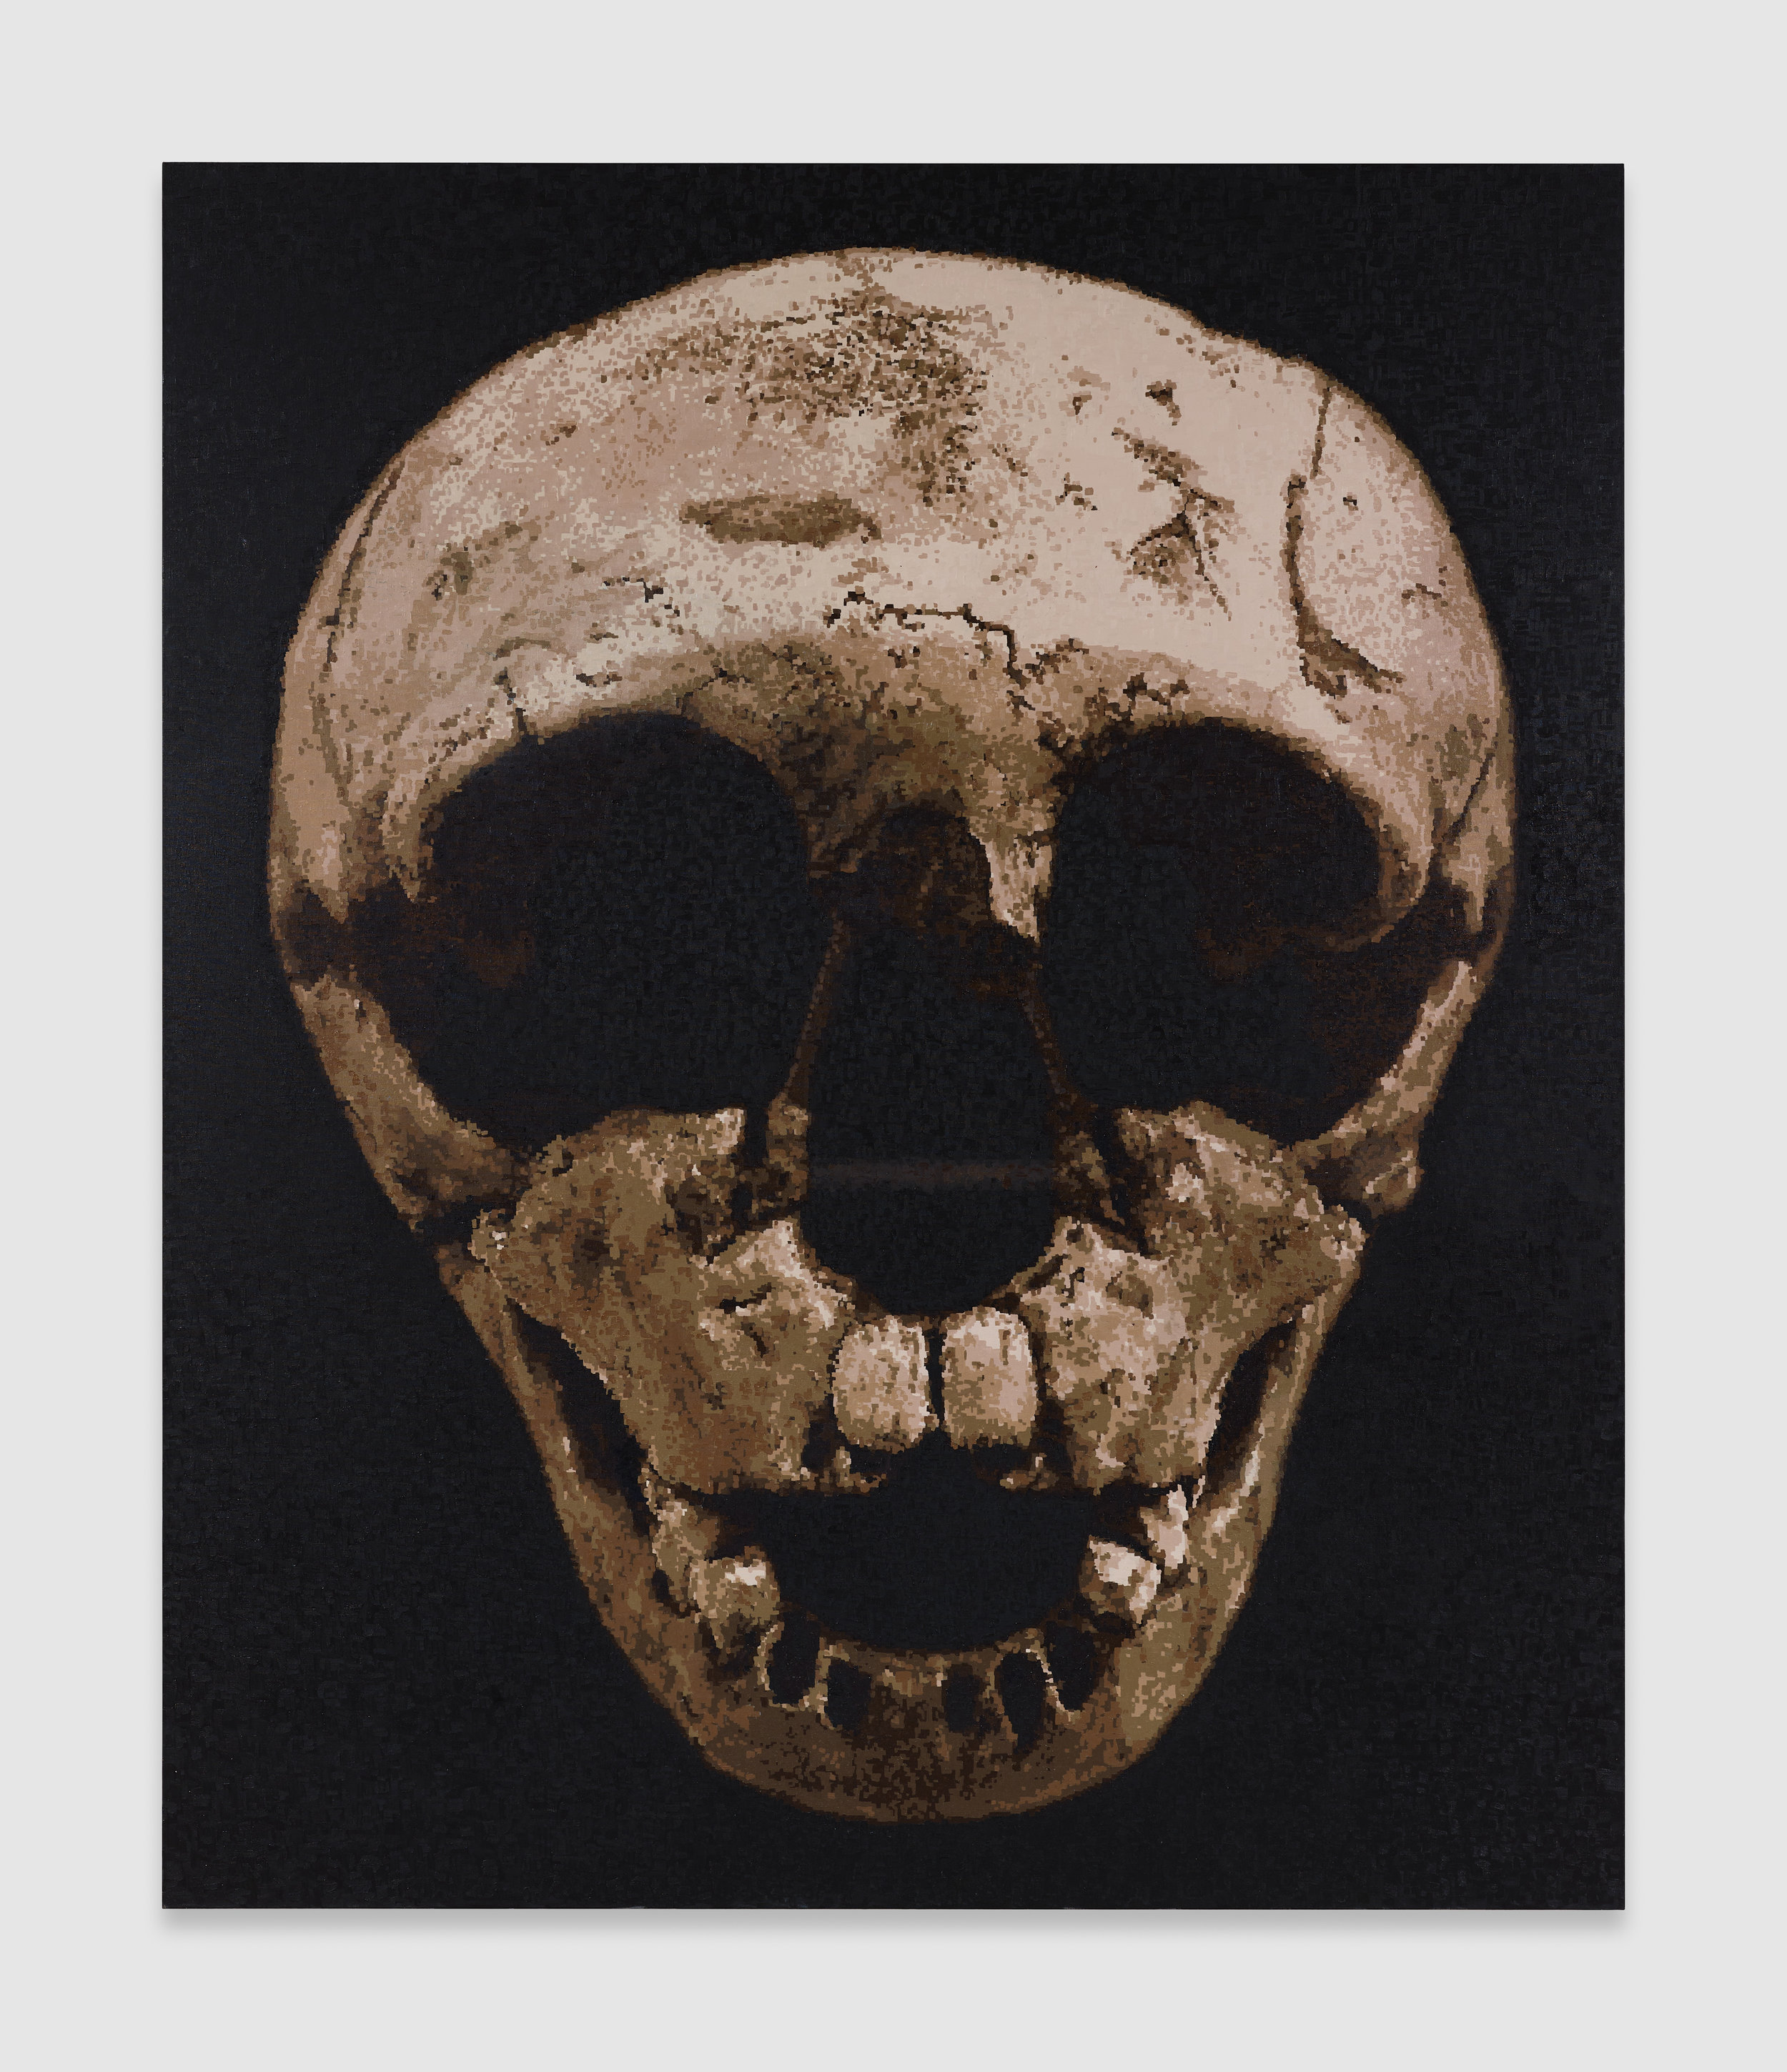 Blake Rayne, Skull Steppe, 2018, Oil on linen